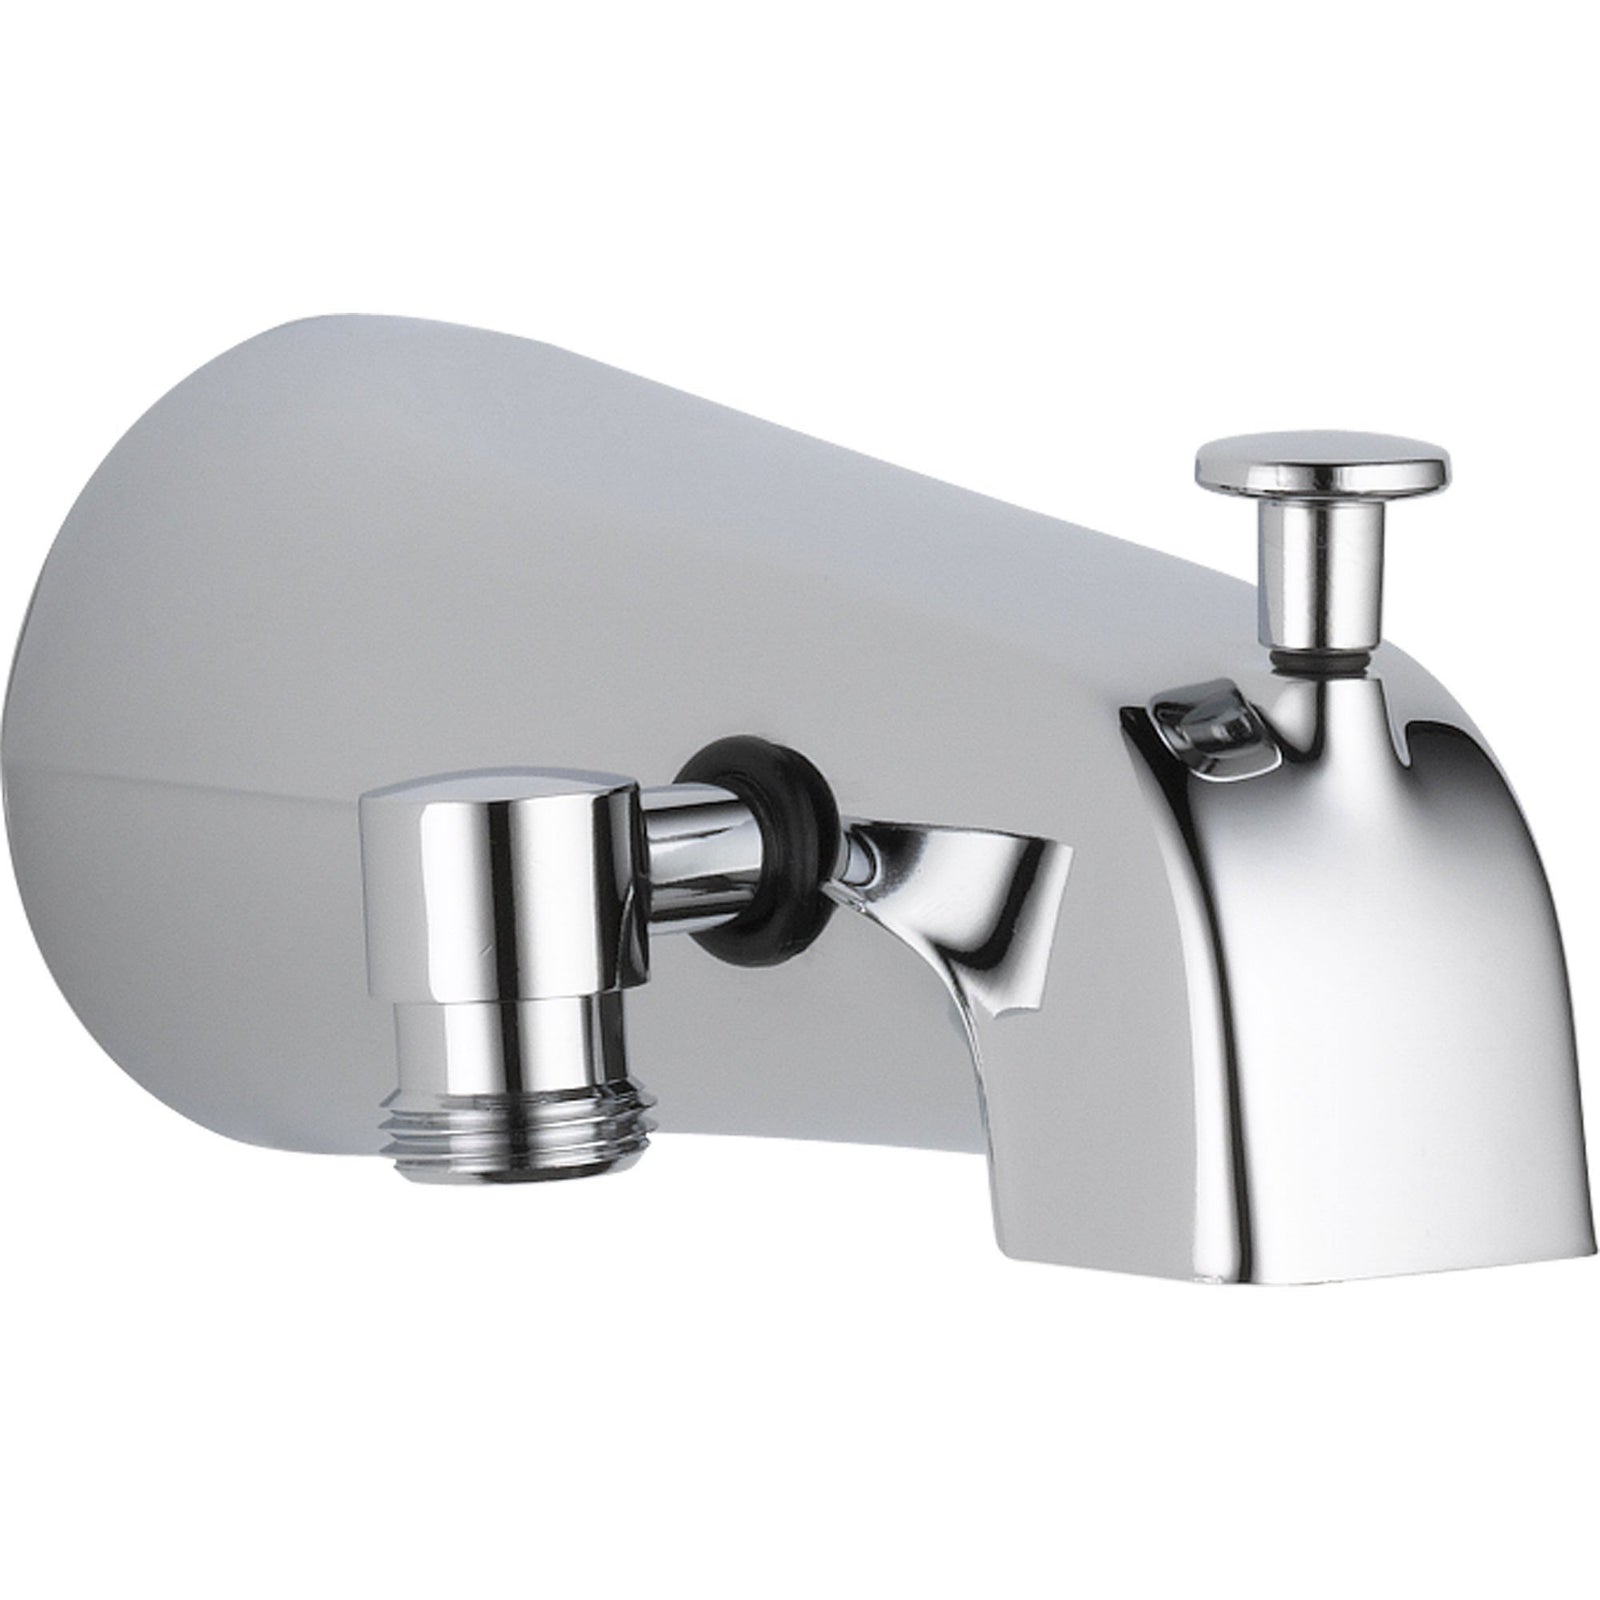 Tub Spouts Get A Modern Or Traditional Tub Spout Some